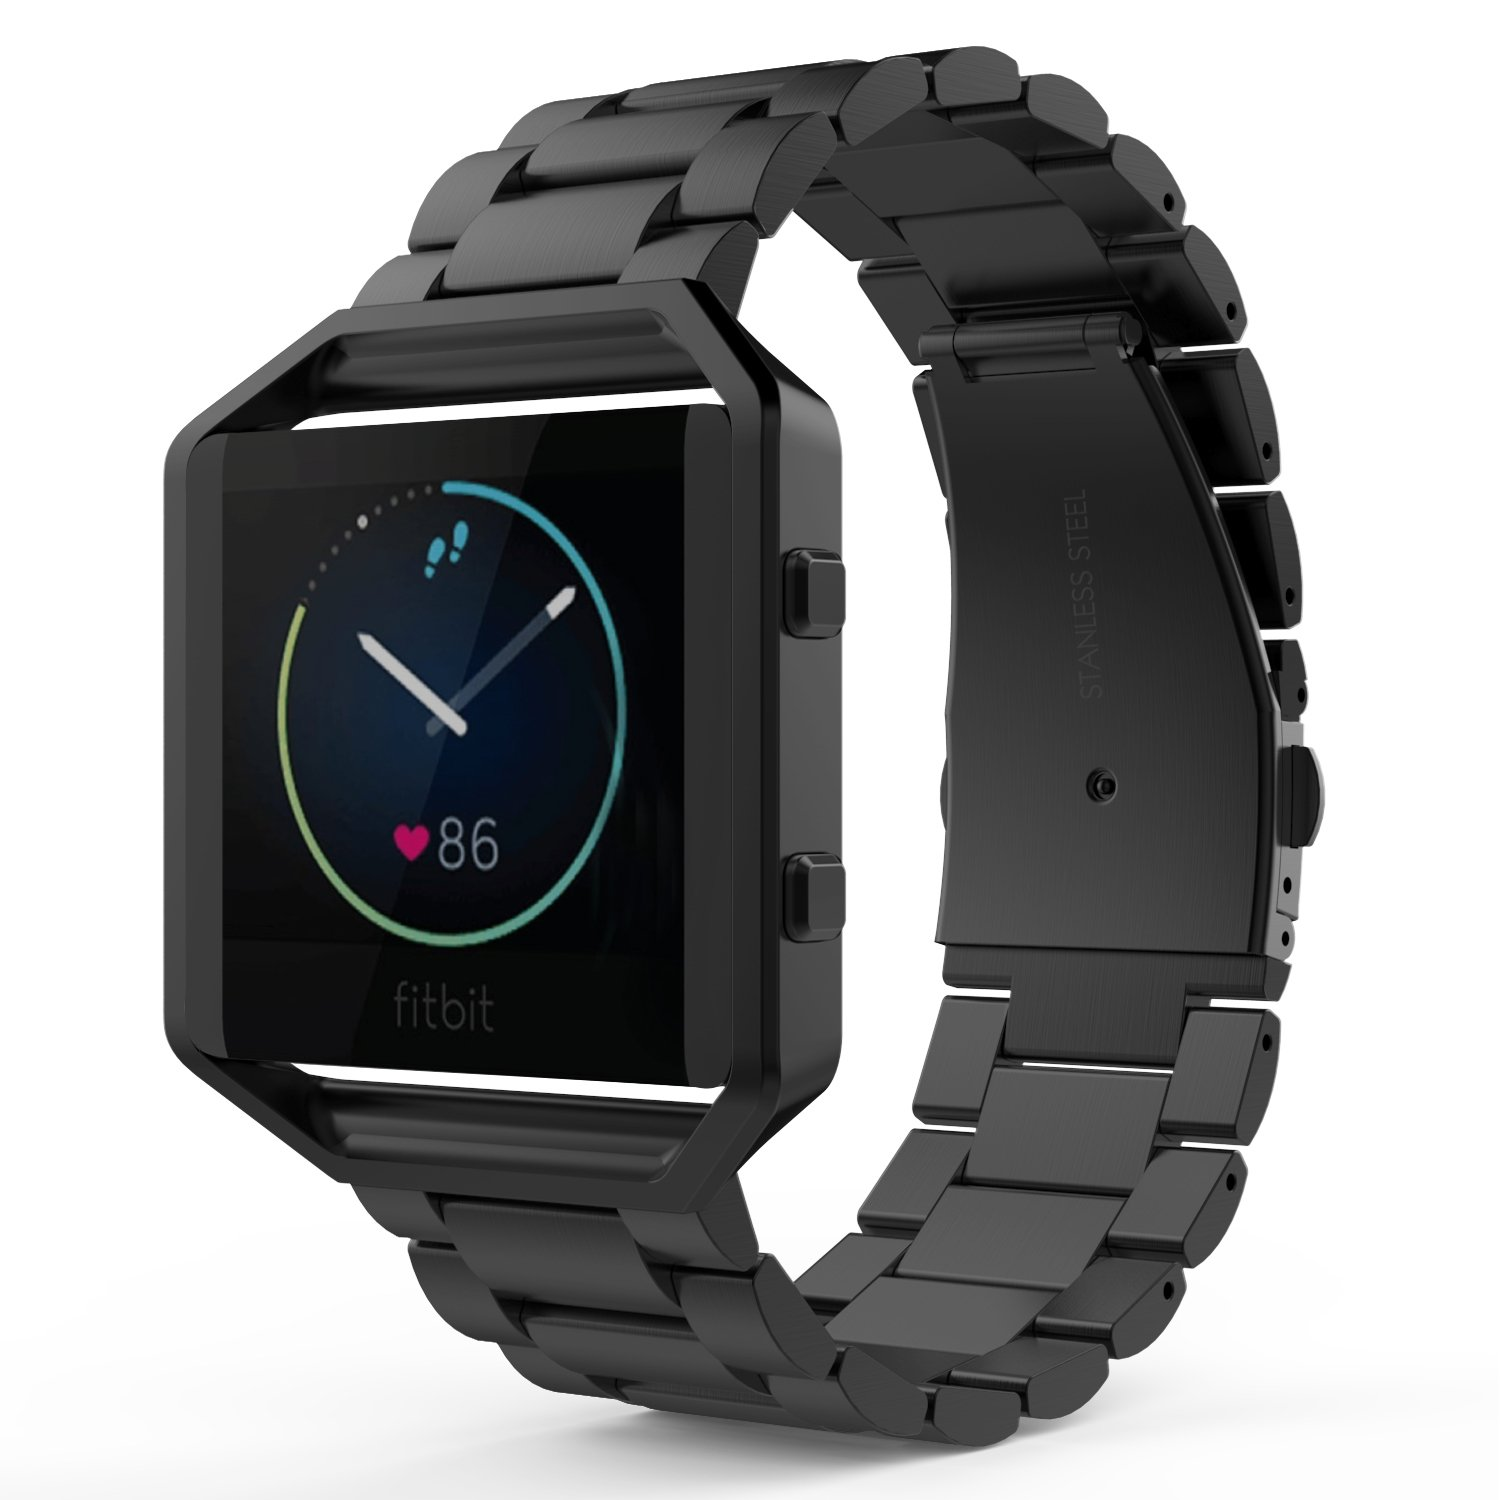 MoKo Fitbit Blaze Band , Universal Stainless Steel Watch Band Strap Bracelet with Spring Pin for for Fitbit Blaze Smart Fitness Watch, Frame NOT Included - BLACK